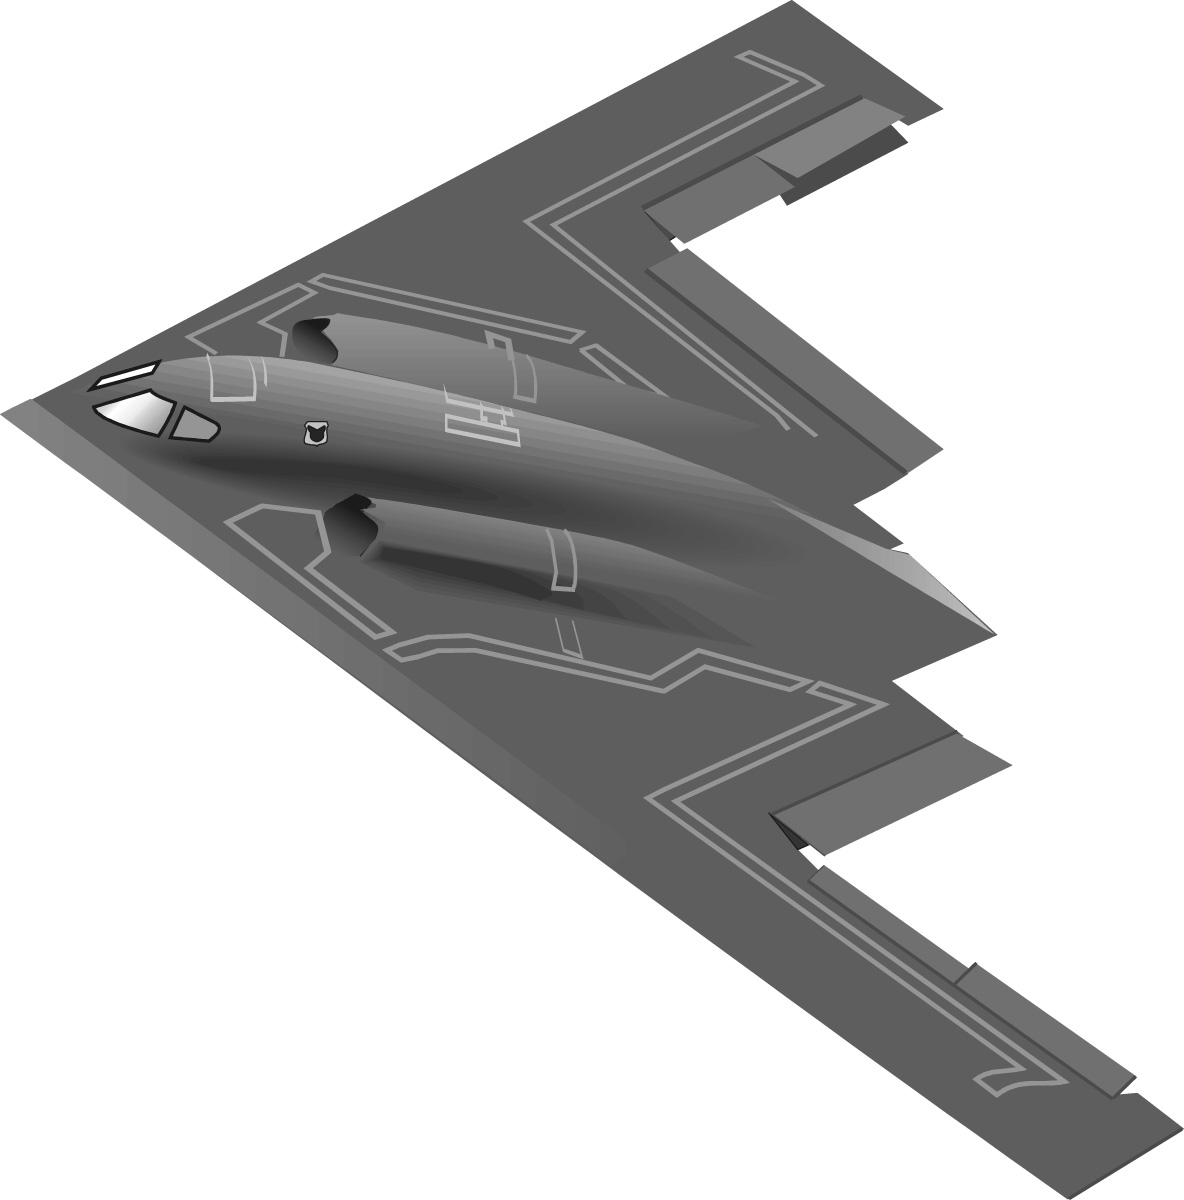 Stealth bomber clipart 20 free Cliparts | Download images on